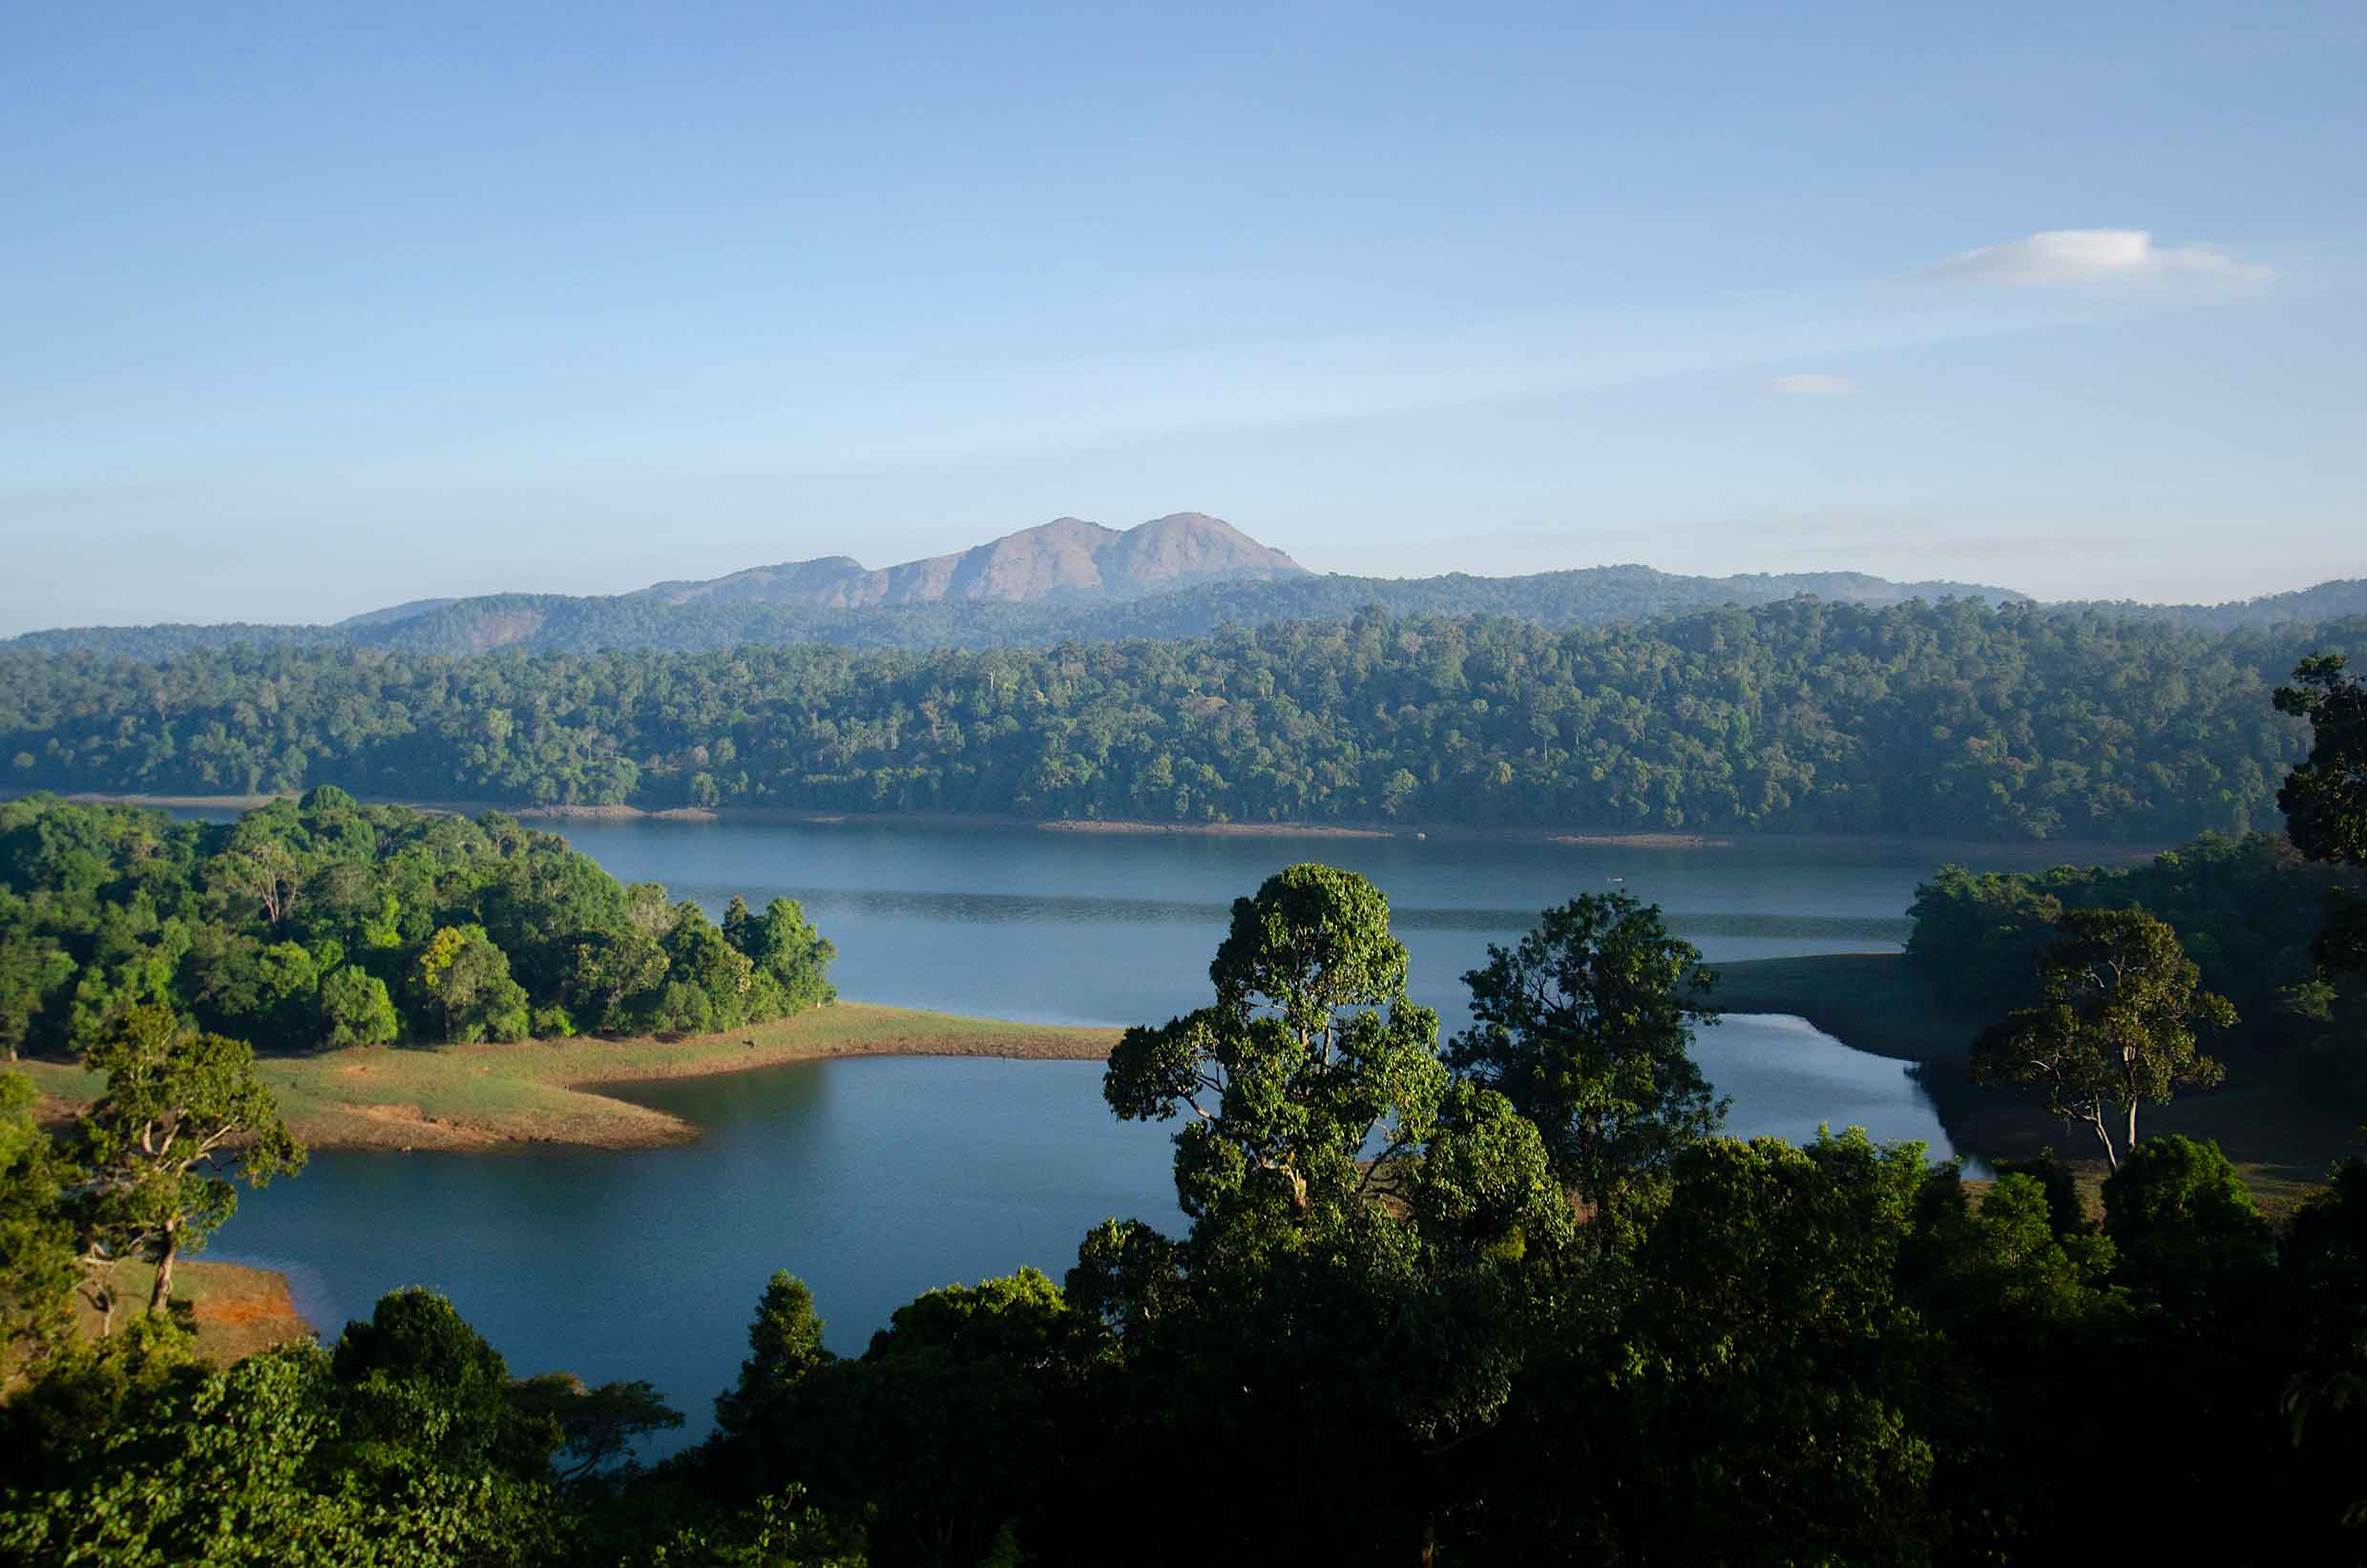 The Parambikulam Tiger Reserve is sandwiched between the Anamalai and the Nelliampathy hills. Three major rivers — the Parambikulam, the Sholayar and the Thekkedy — run through landscape feeding lakes, reservoirs and streams. Photos: Pravin Shanmuganandam (top), Ganesh Raghunathan (above)